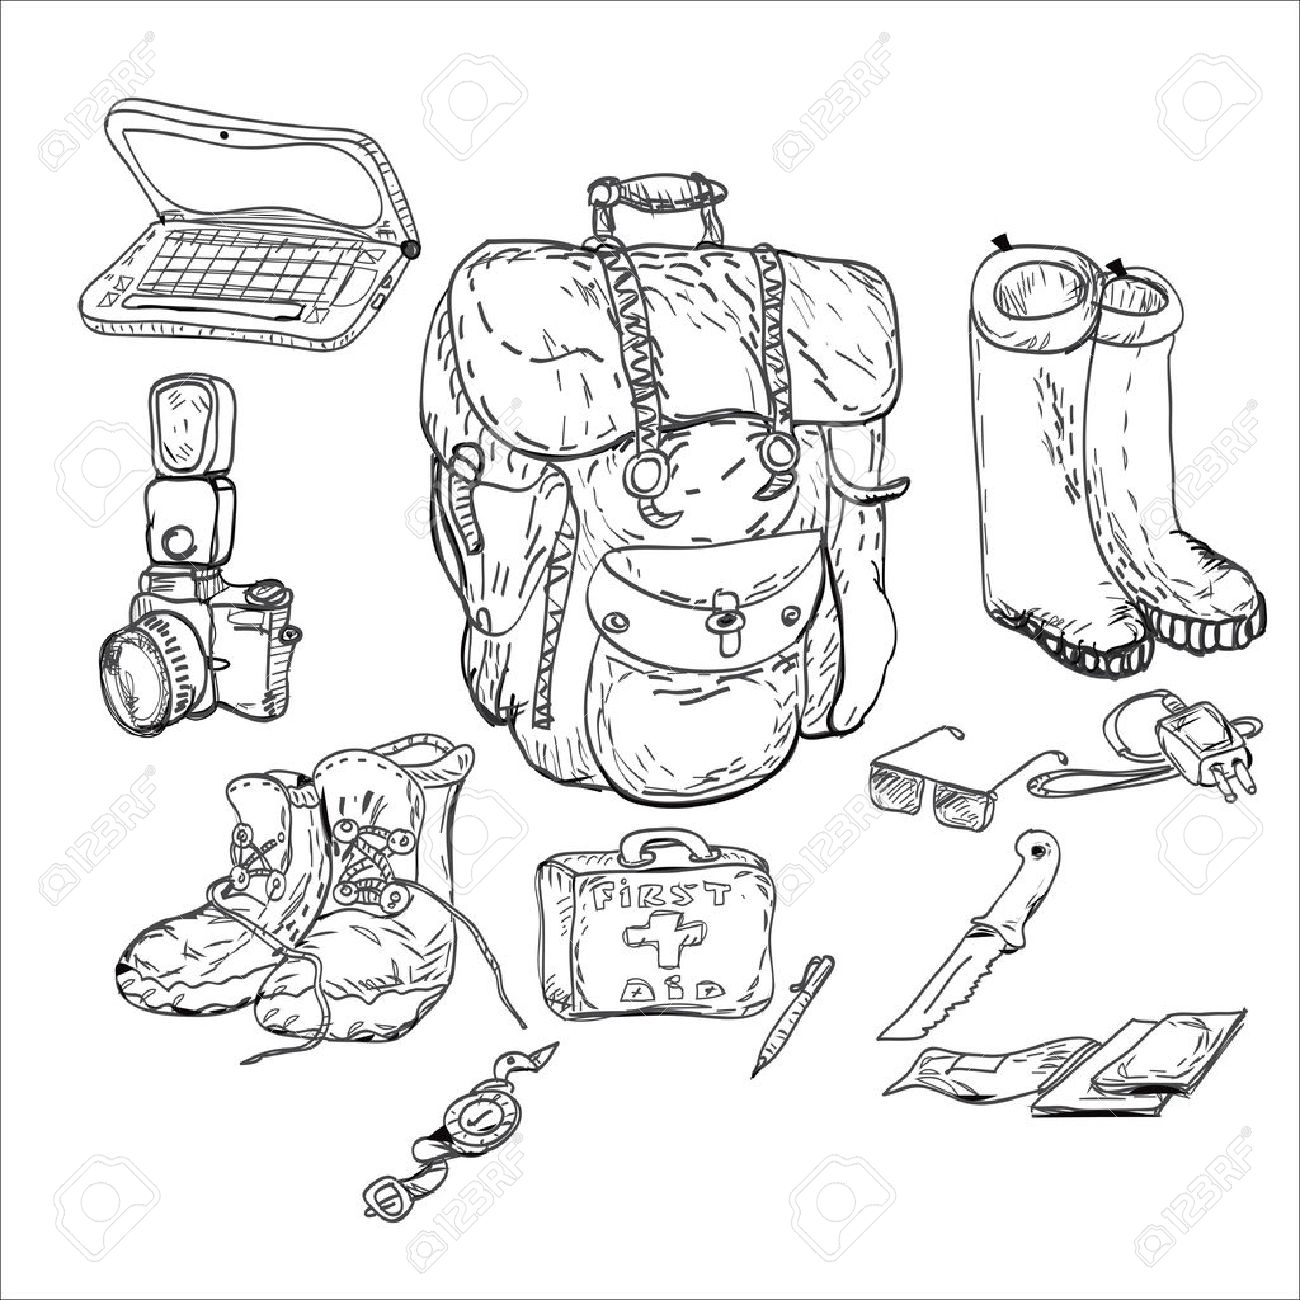 Travel Background And Survival Kit Drawing In Doodle Style Black White Stock Vector